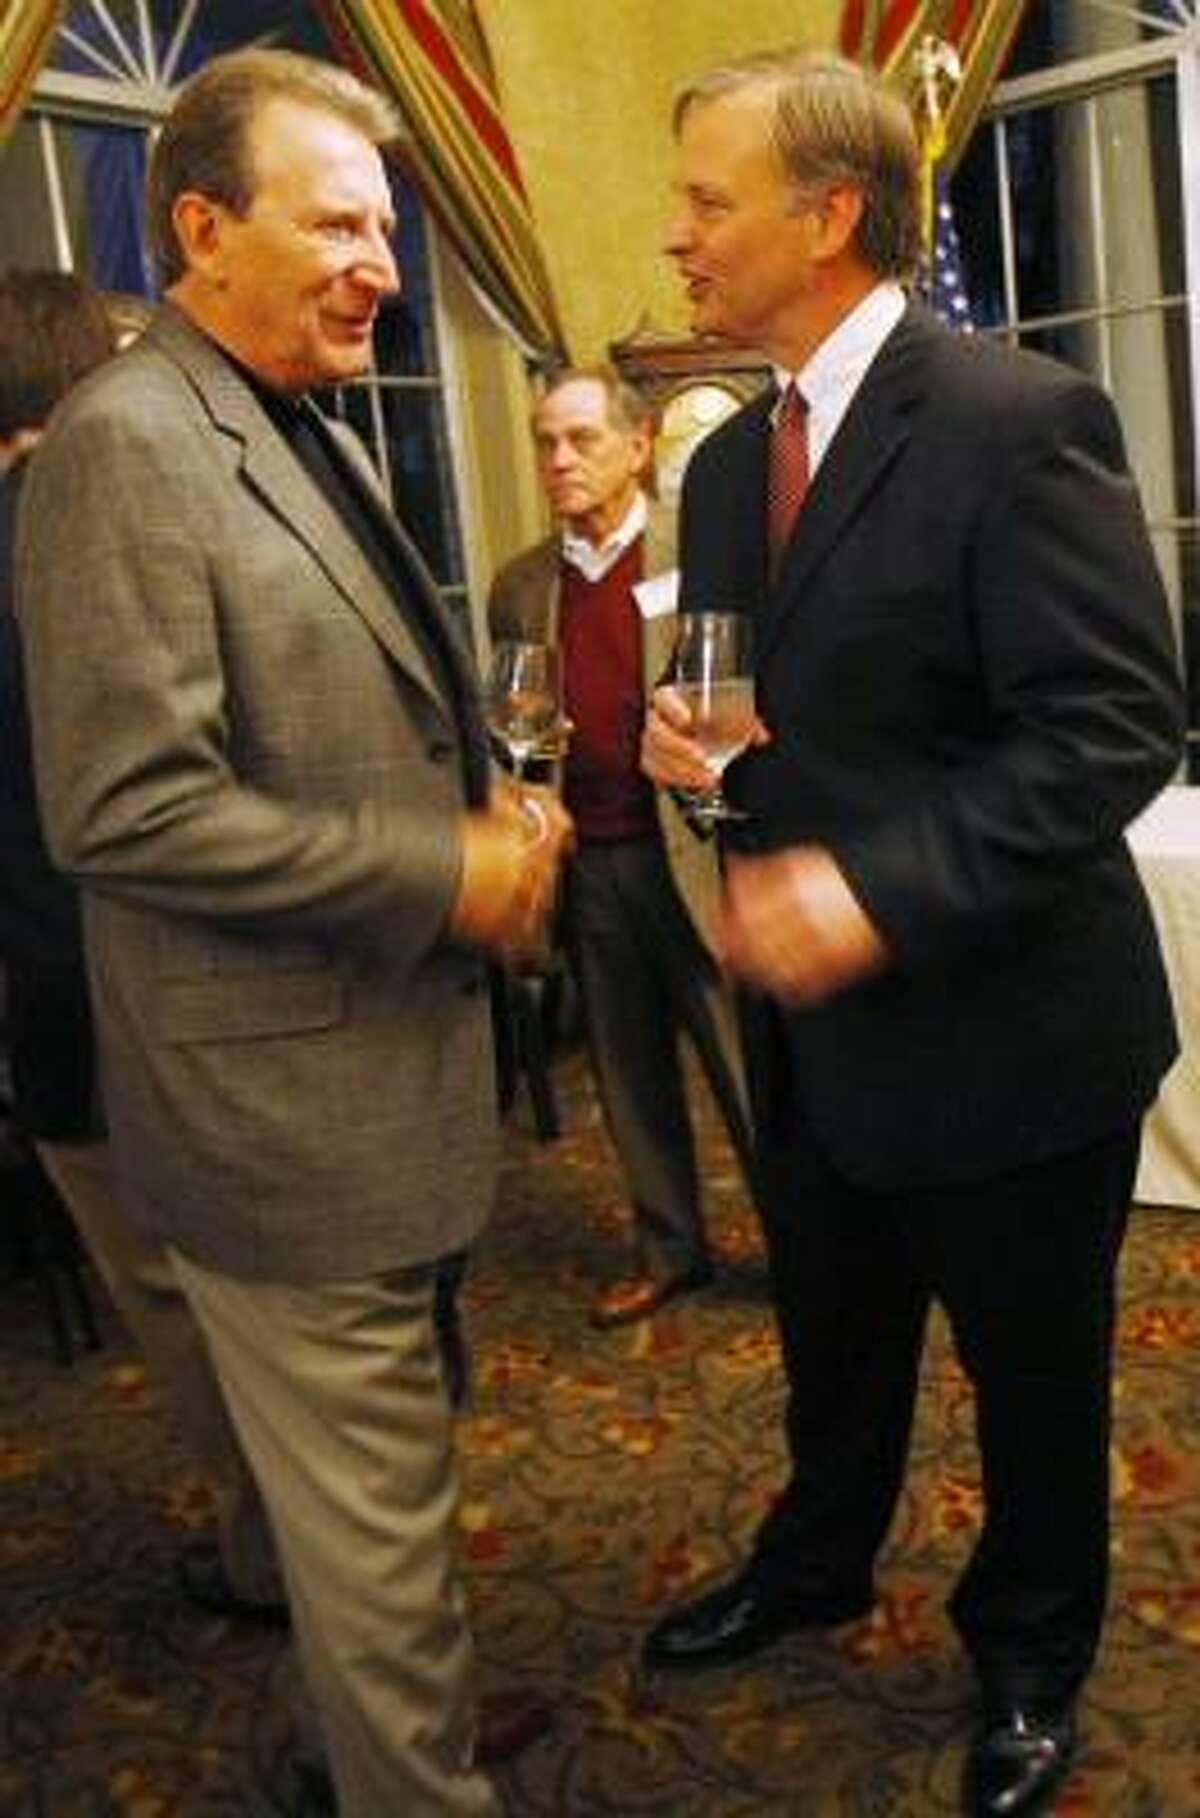 Hrbacek, right, talks to Joe Panozzo at a campaign fundraiser at the Sugar Creek Country Club on Thursday.